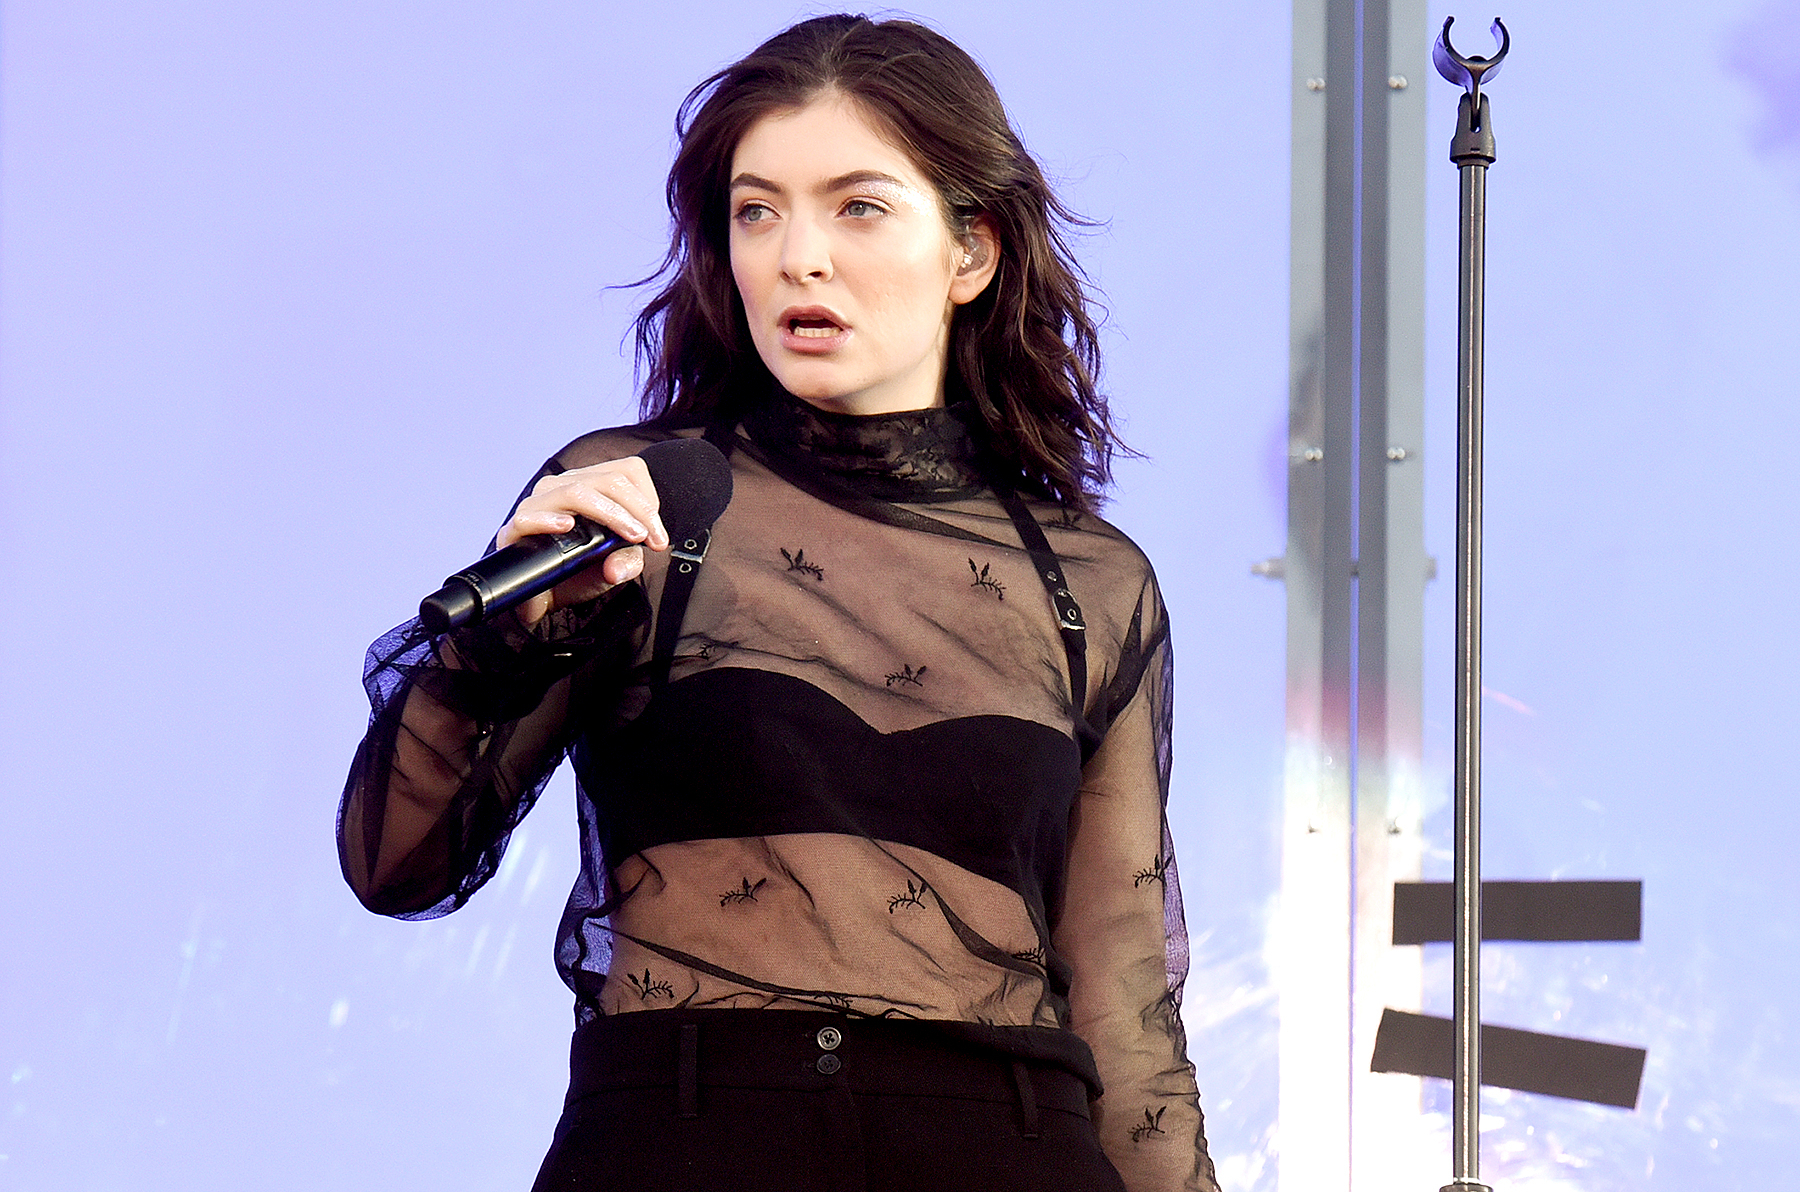 Lorde performs onstage during 2017 Governors Ball Music Festival - Day 1 at Randall's Island on June 2, 2017 in New York City.